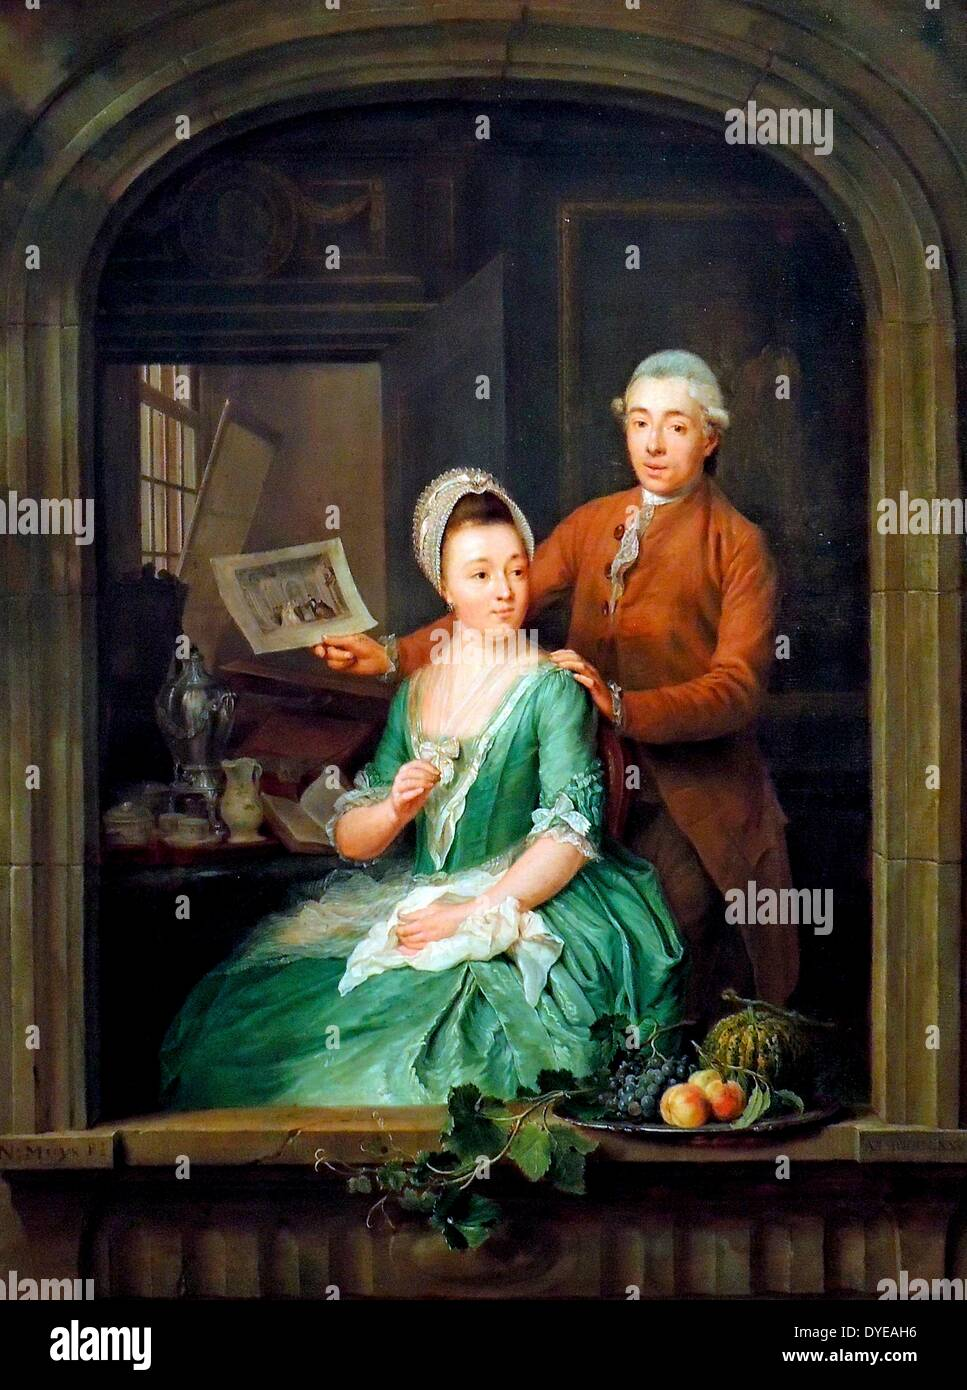 Portrait of Robert Muys and his Wife Maria Nozeman by Nicolaes Muys (1740-1808), oil on panel, 1778. - Stock Image